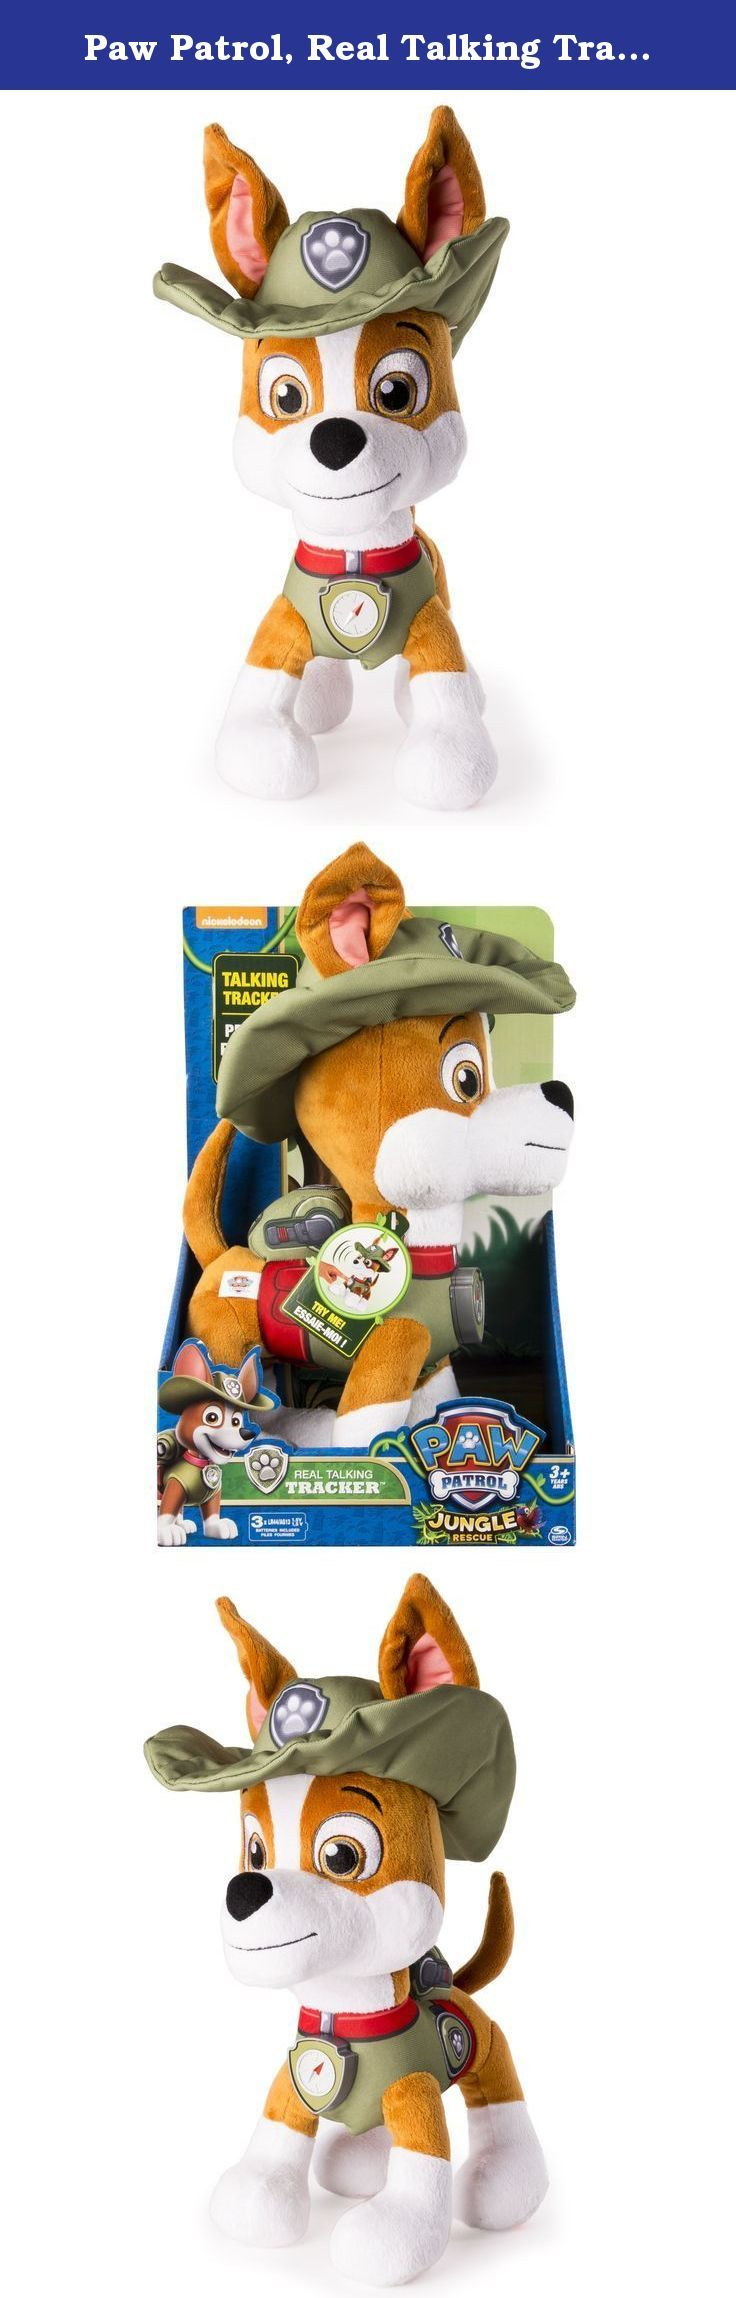 Paw Patrol, Real Talking Tracker Plush. Paw Patrol is on a Roll! Now you can bring home your favourite Paw Patrol Pup with Real Talking Tracker! Just squeeze Tracker's badge to hear phrases directly from the Paw Patrol show! Perfect for bedtime or playtime Tracker comes with you wherever you go and helps you on all of your Paw Patrol adventures throughout the day! Each Real Talking plush Pup comes with a badge, their Paw Patrol vest and hat. Collect all your favorite pups for more Paw…